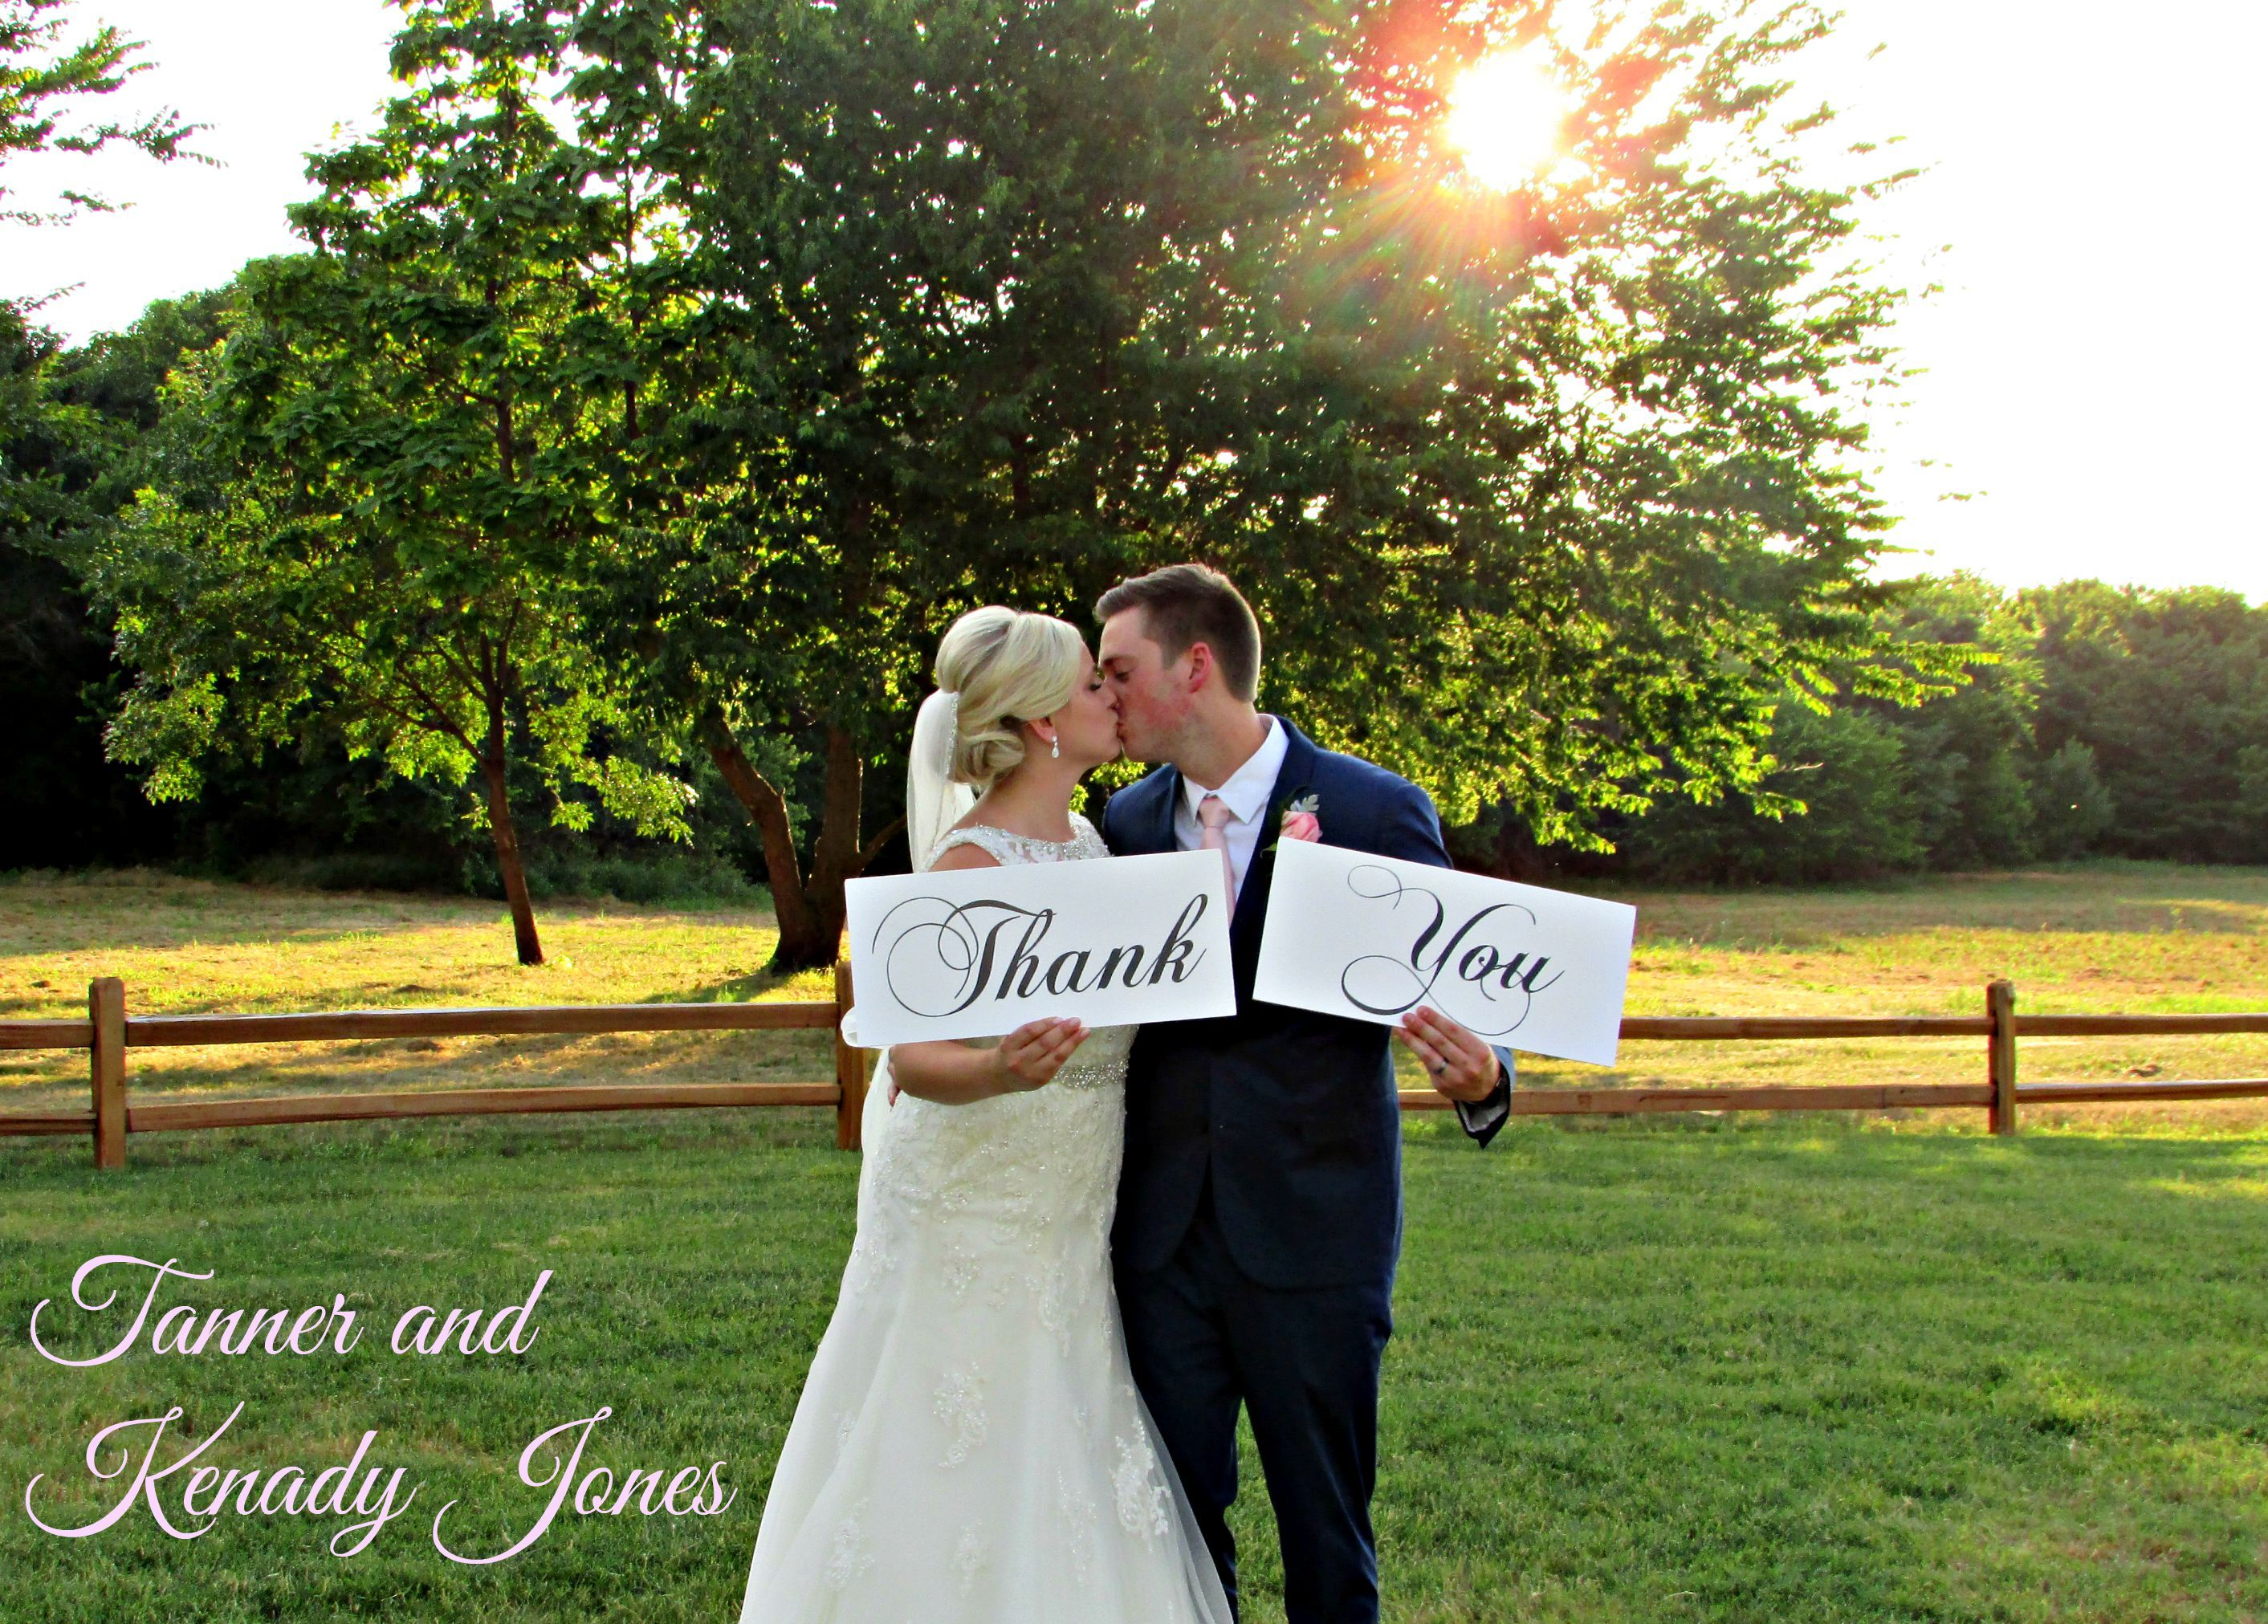 Wishing a lifetime of love and happiness to these two wonderful #newlyweds! Thank you so much for choosing Chisholm Springs for your #weddingday celebration!